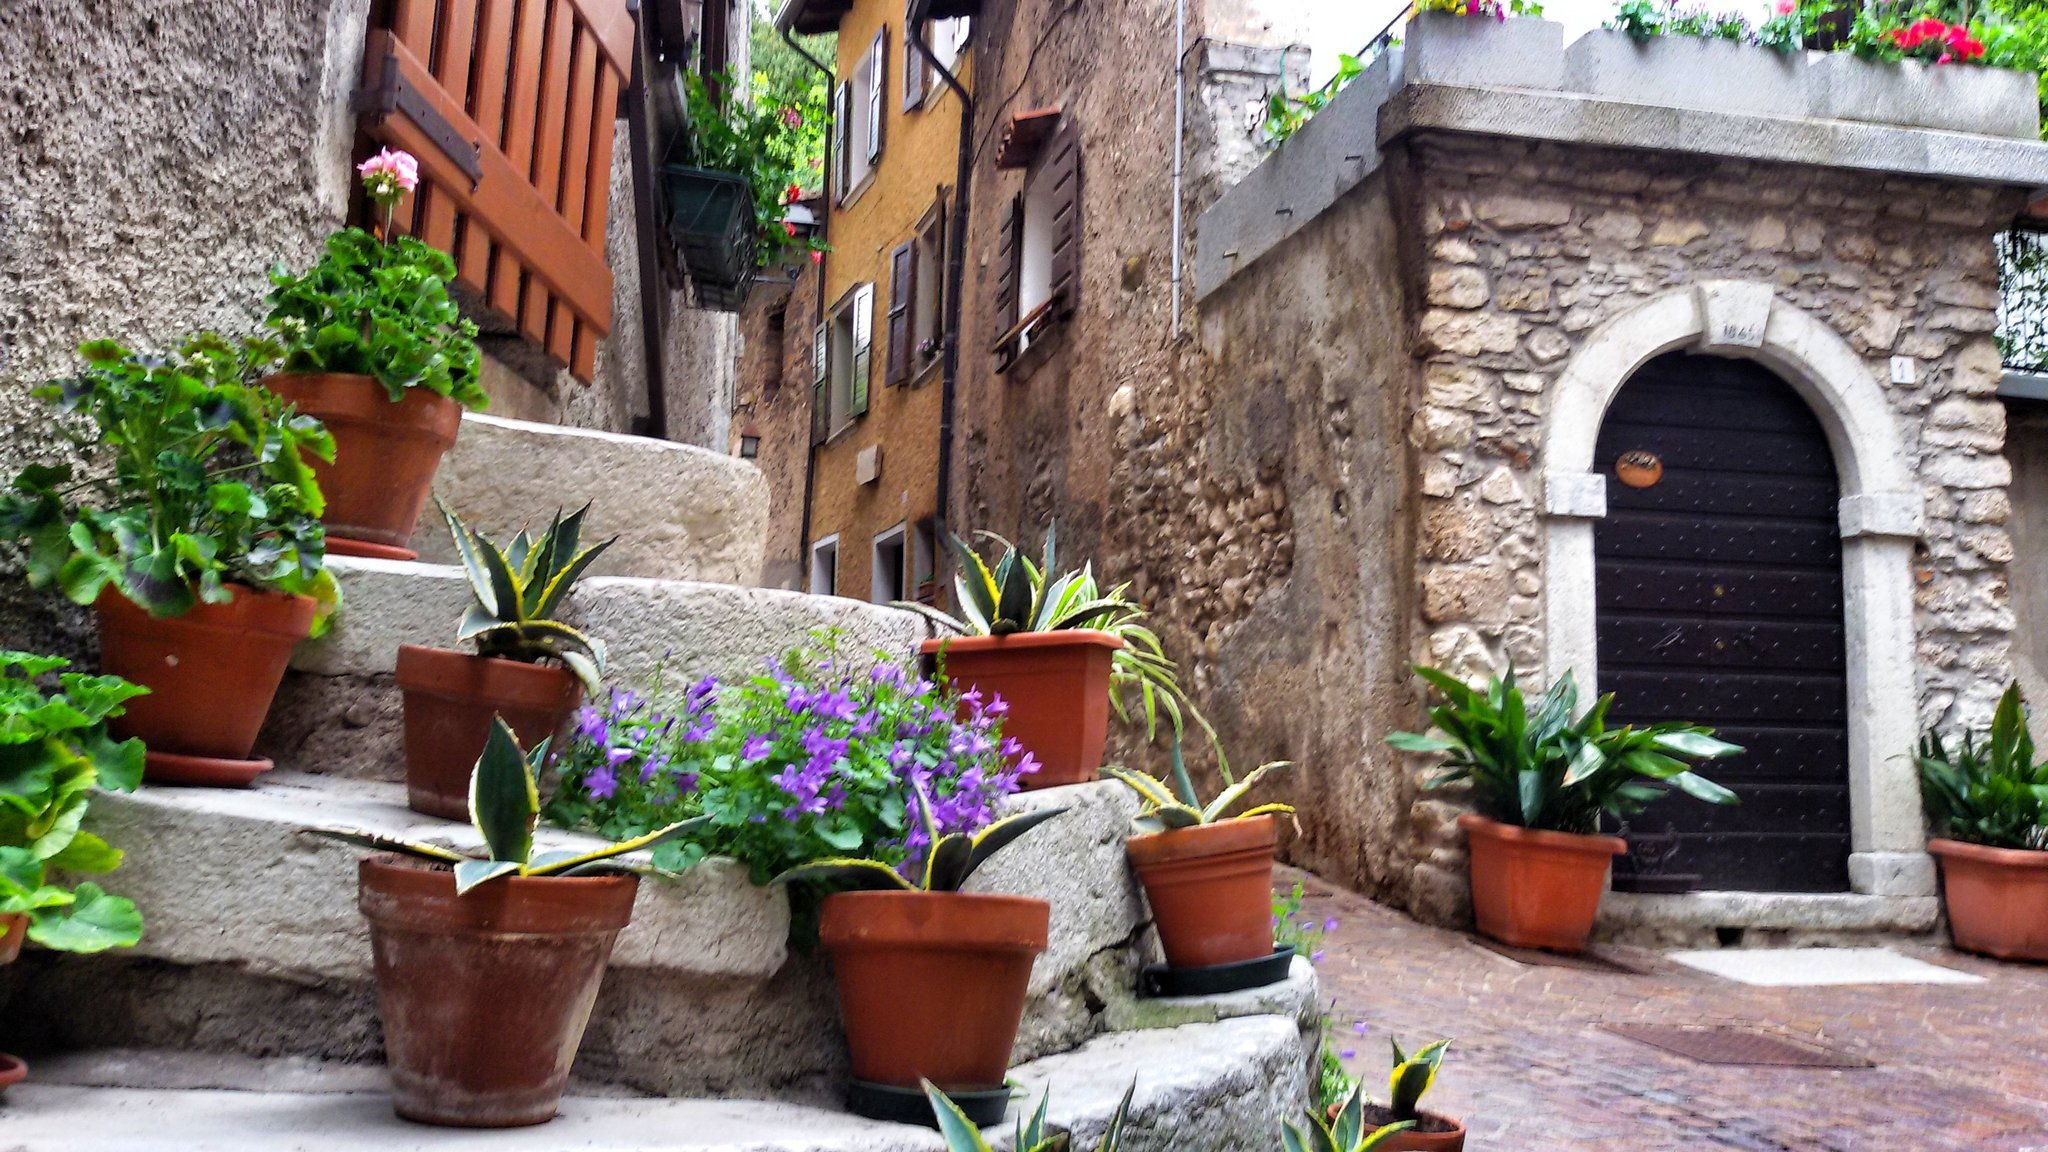 Scoprire uno dei borghi più belli d'Italia #tremosine #wearetremosine #invasionidigitali #italianvillages #inLombardia #garda https://t.co/NVZd2KFR4f